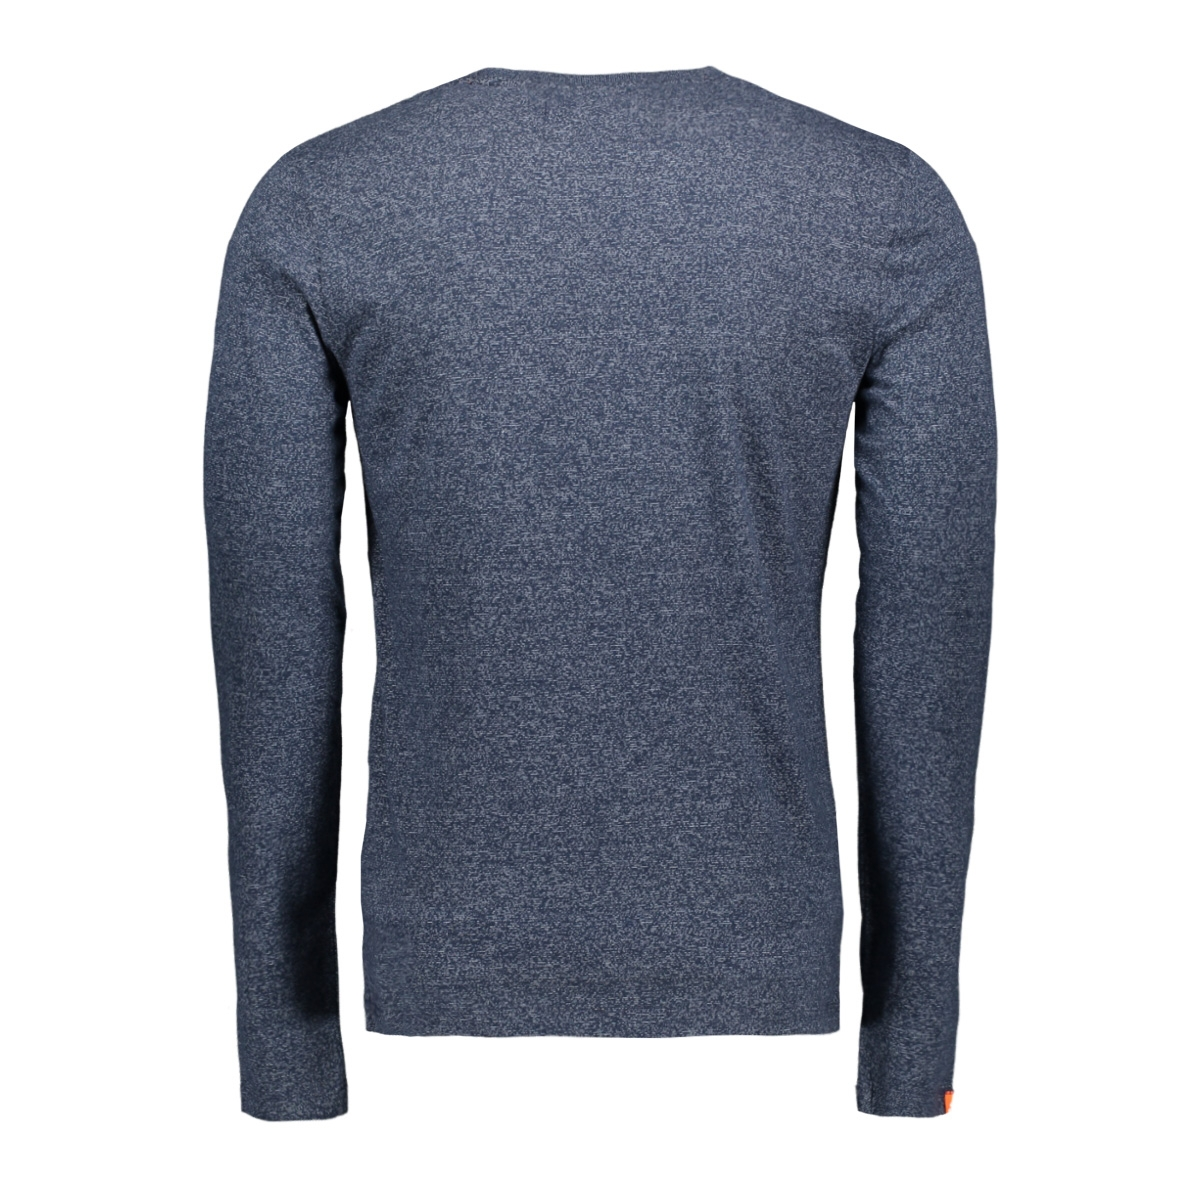 embroidery ls tee m60103et superdry t-shirt classic blue feeder